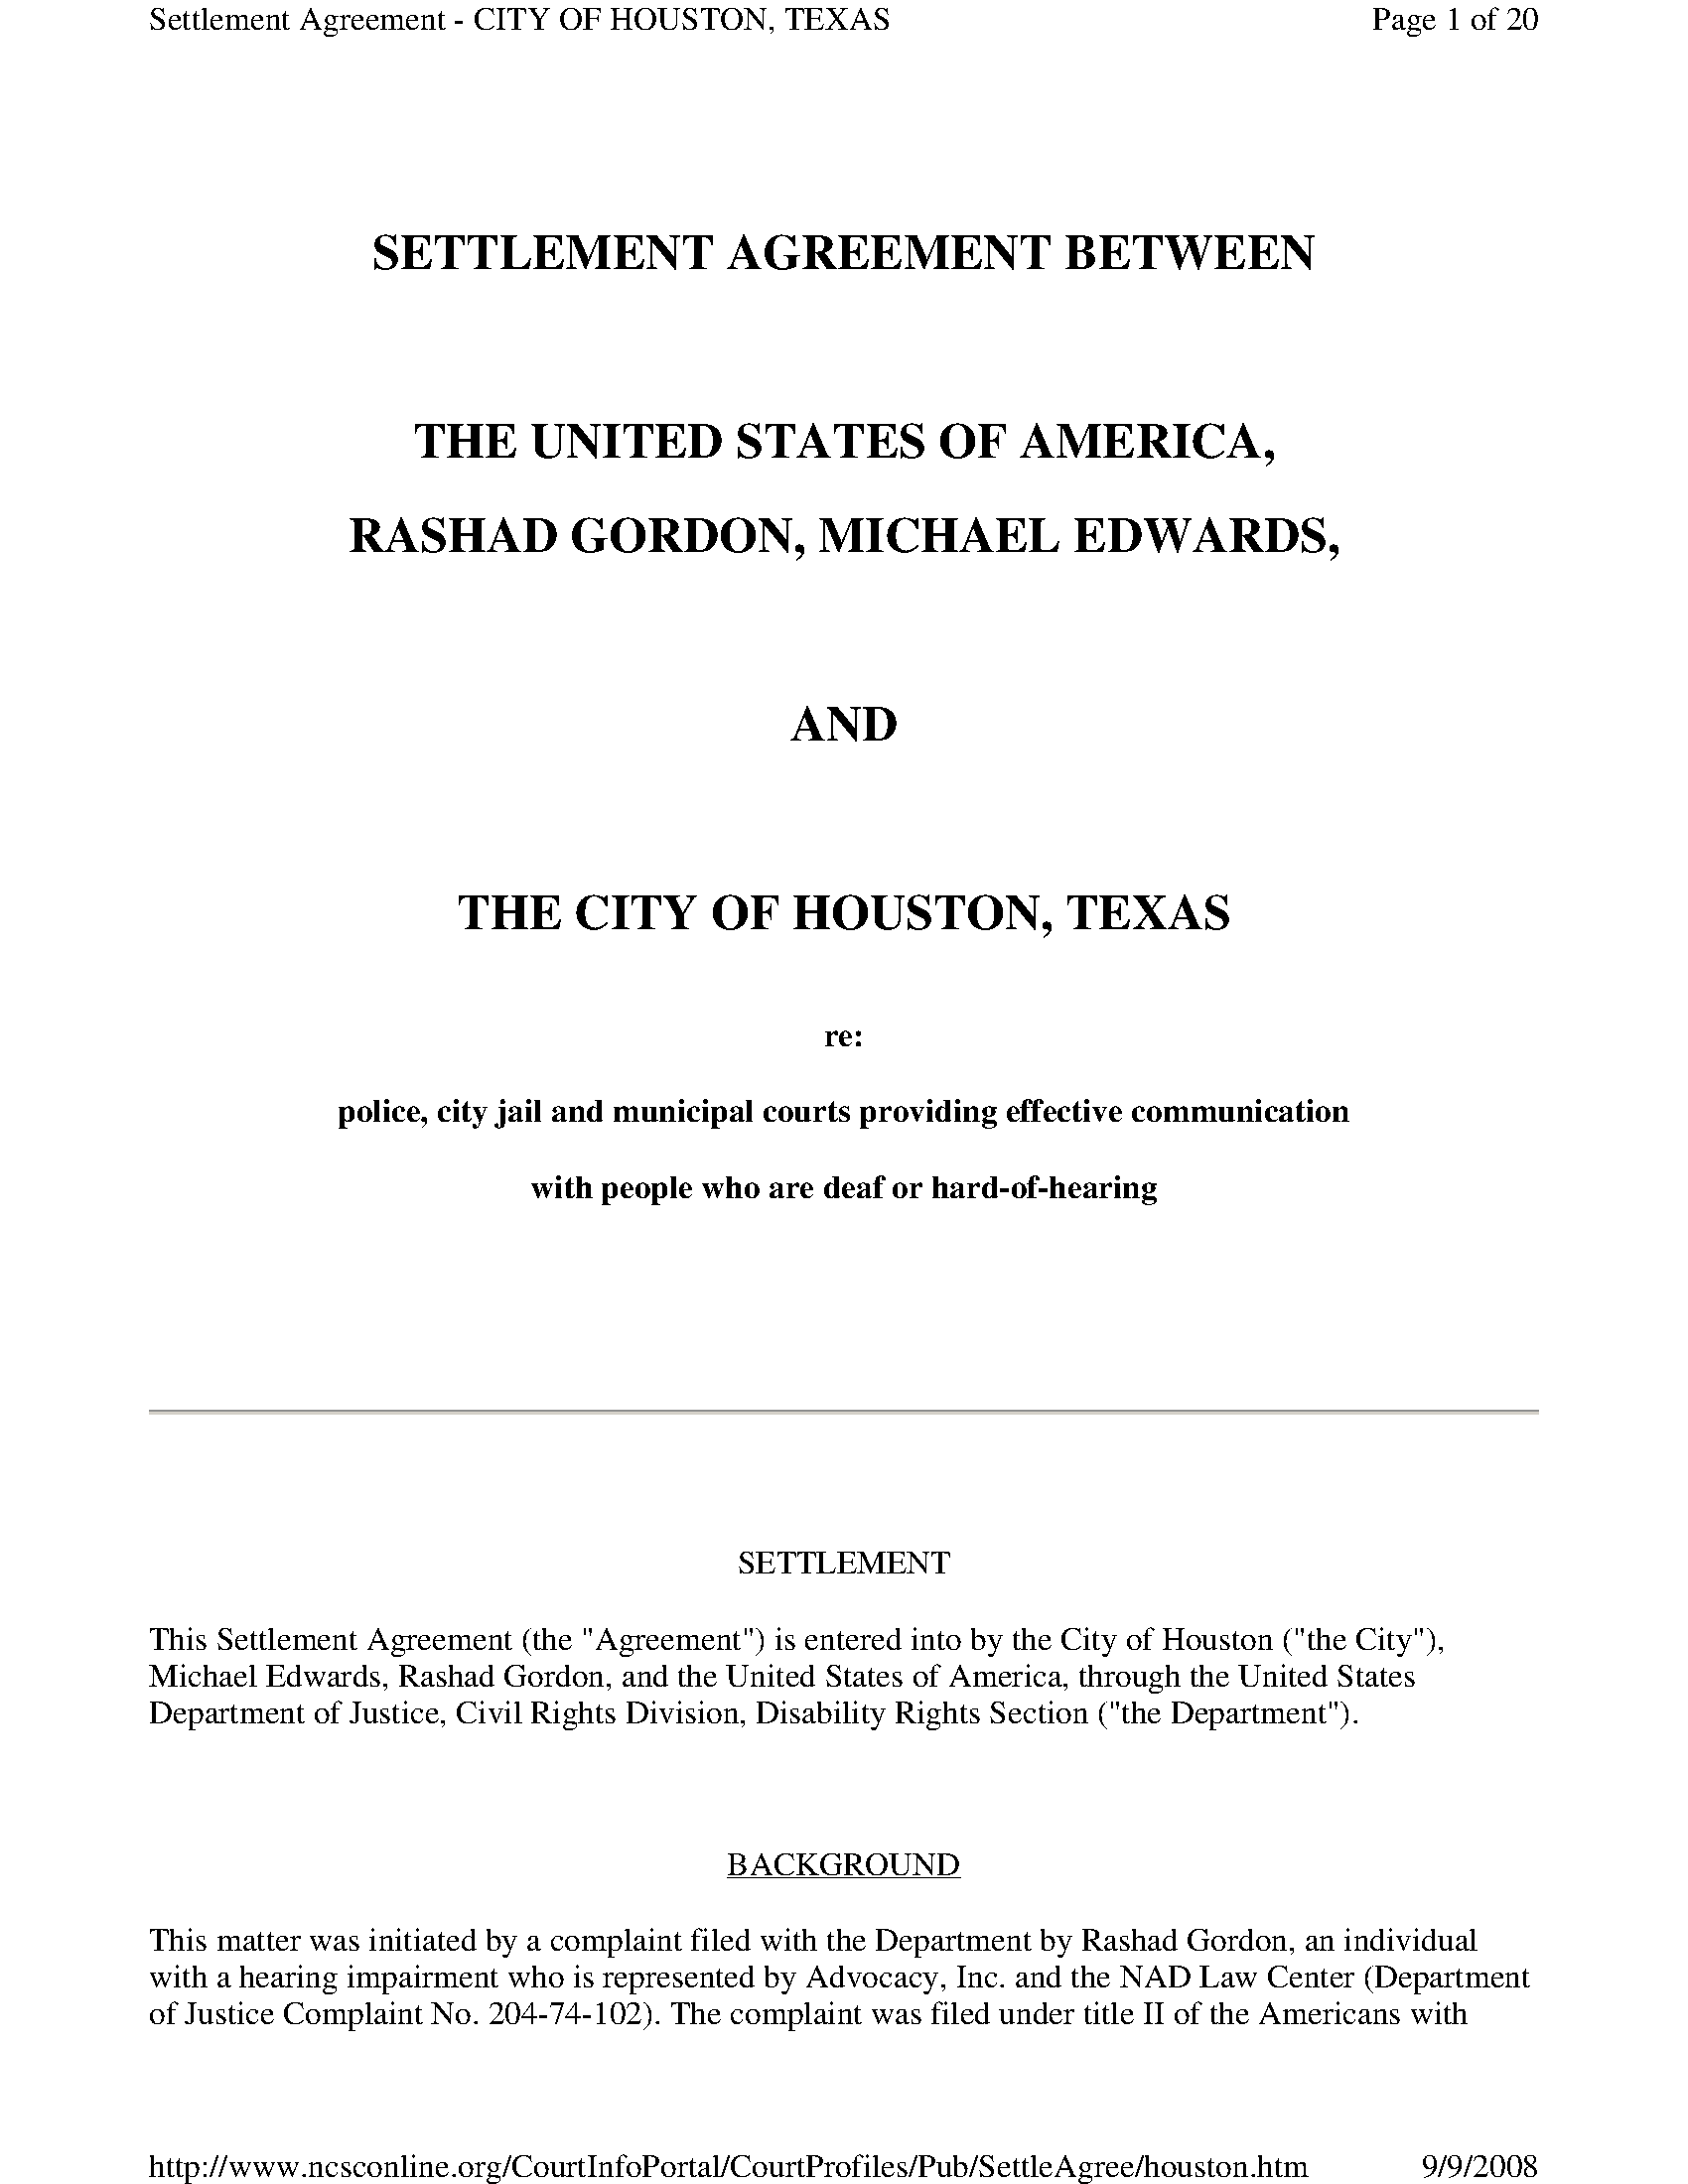 Settlement Agreement Between The United States Of America Rashad